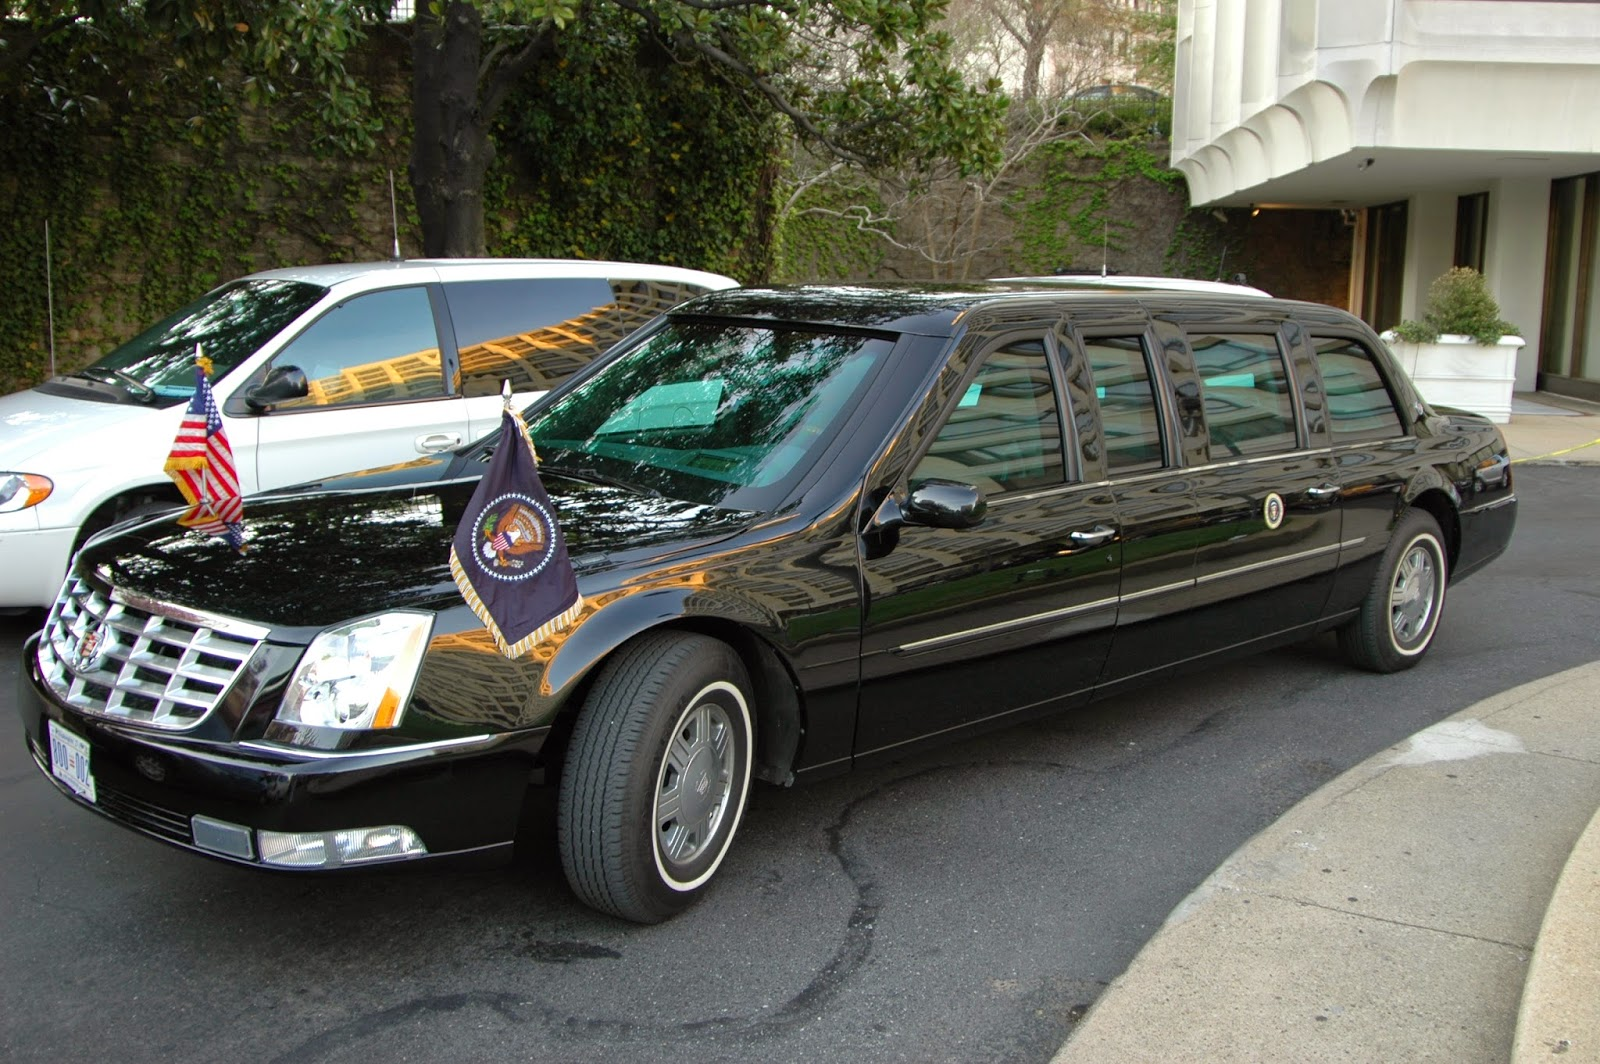 Obama Edition Cadillac One This Is The Car Of Us President Car